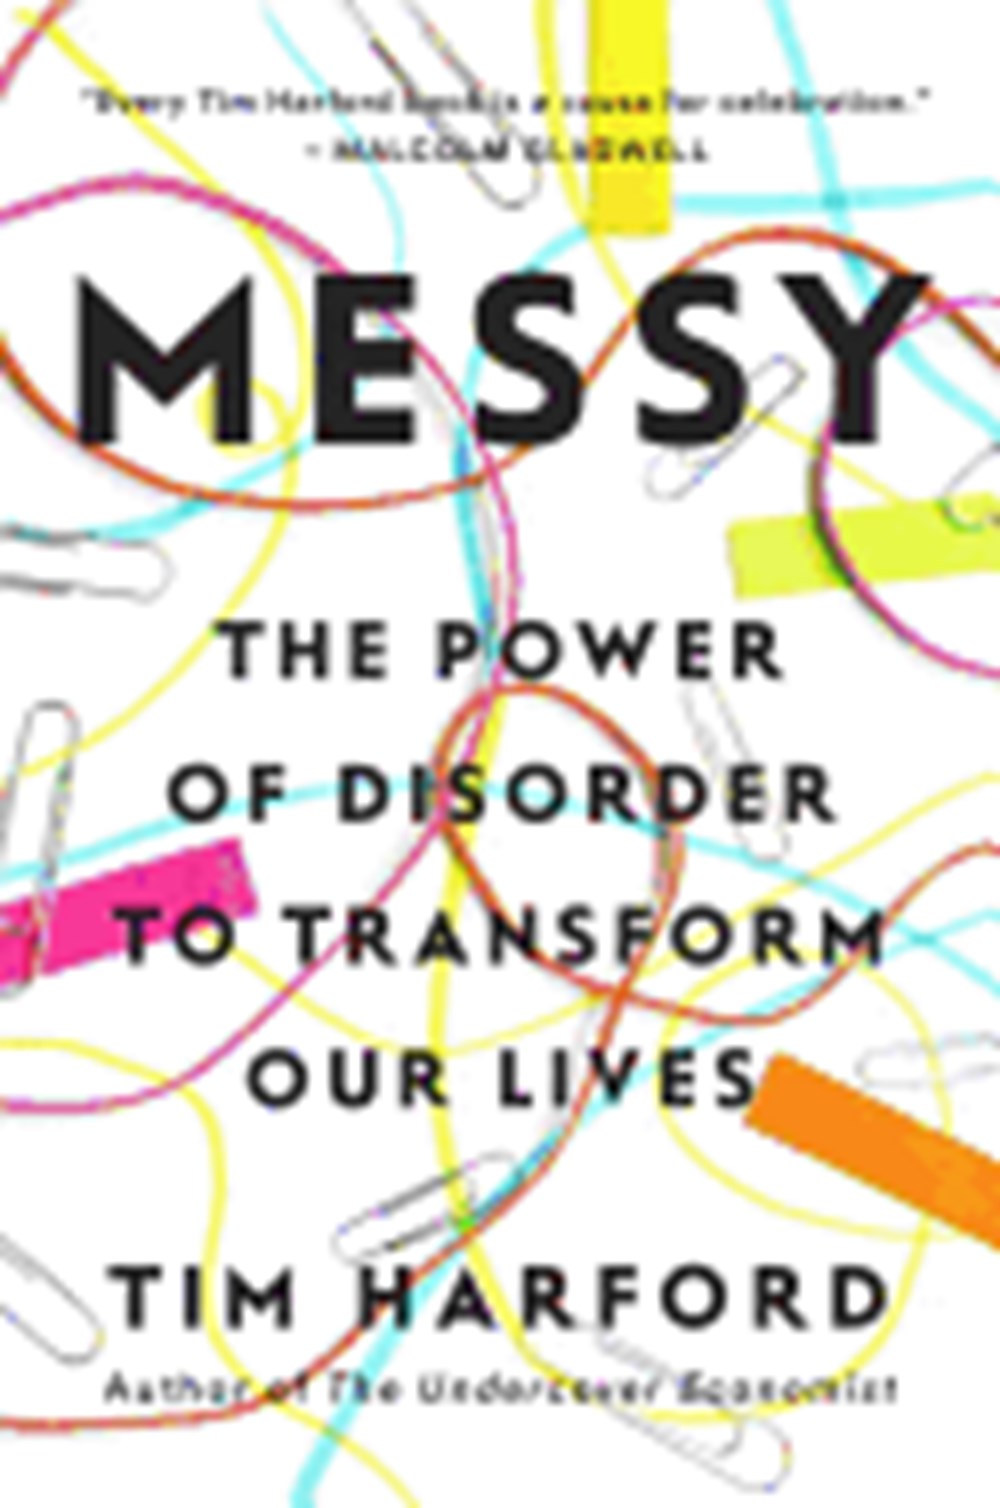 Messy The Power of Disorder to Transform Our Lives